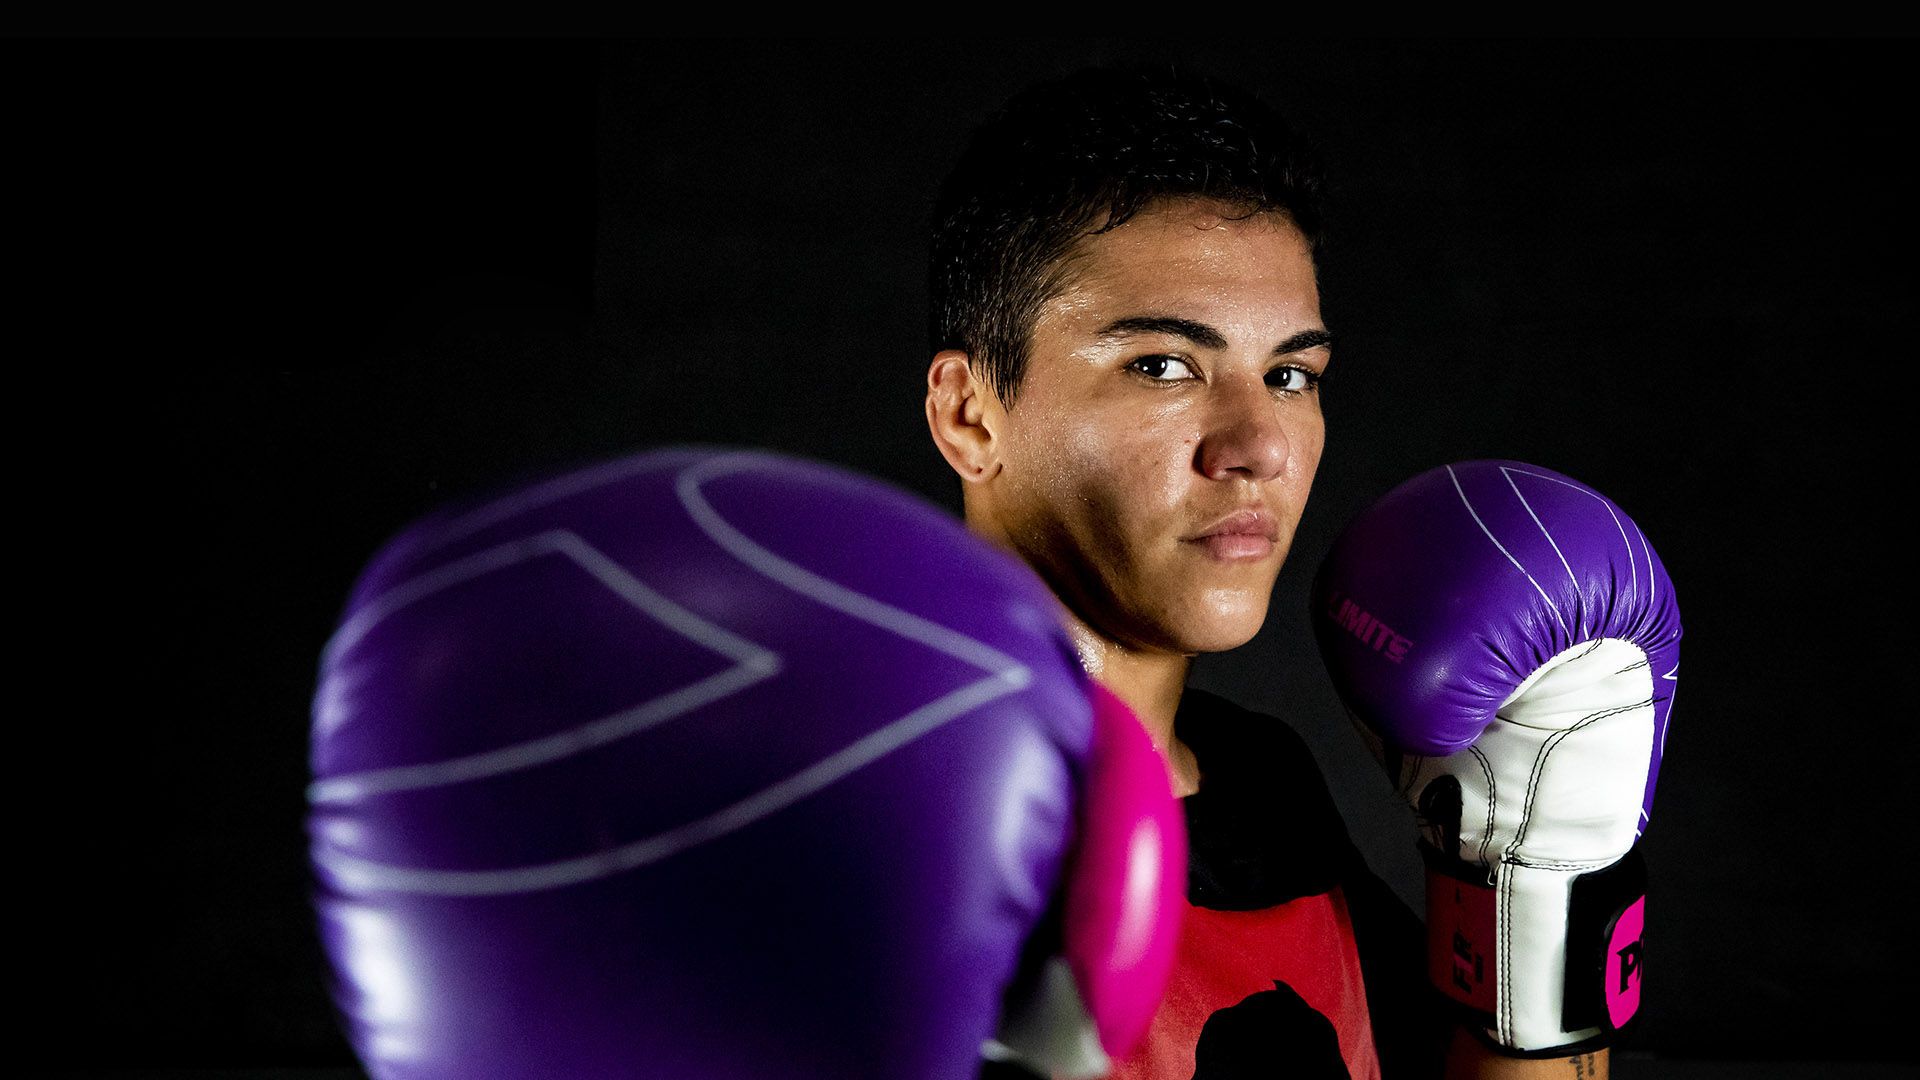 """Jessica Andrade """"Bate Estaca"""" of PRTV team poses for a photo during a training session amidst the coronavirus (COVID-19) pandemic at PRVT - Parana Vale Tudo gym on August 7, 2020 in Niteroi, Brazil. Andrade competes in the strawweight division and is the first Brazilian woman to fight for the UFC, currently #2 in the UFC women's strawweight rankings. (Photo by Buda Mendes/Getty Images)"""